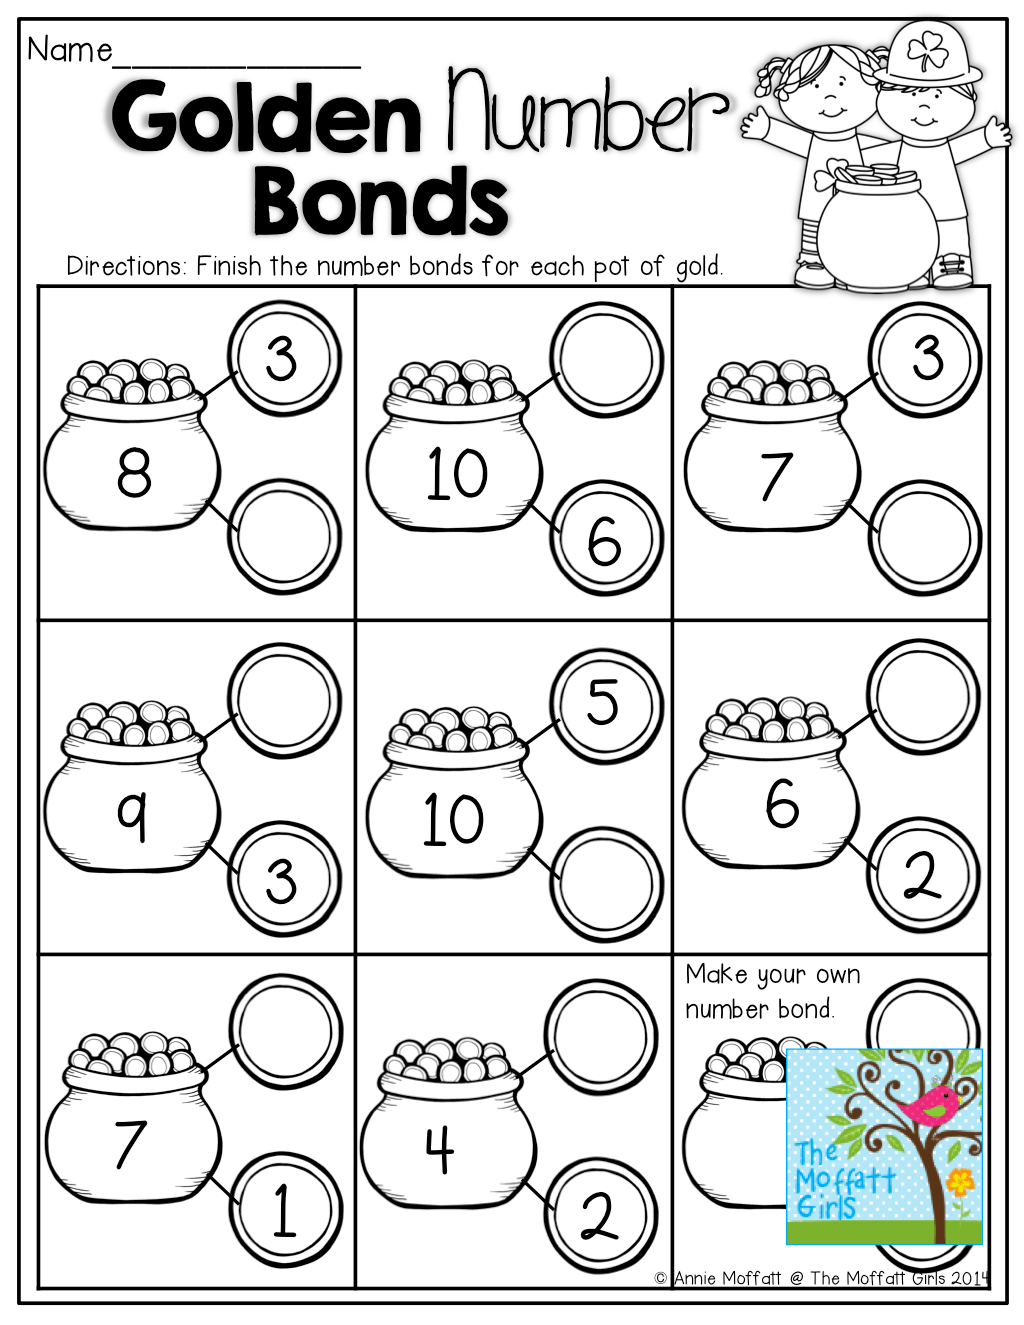 Number Bonds Fill In The Missing Part On The Coins Tons Of Fun And Effective Printables